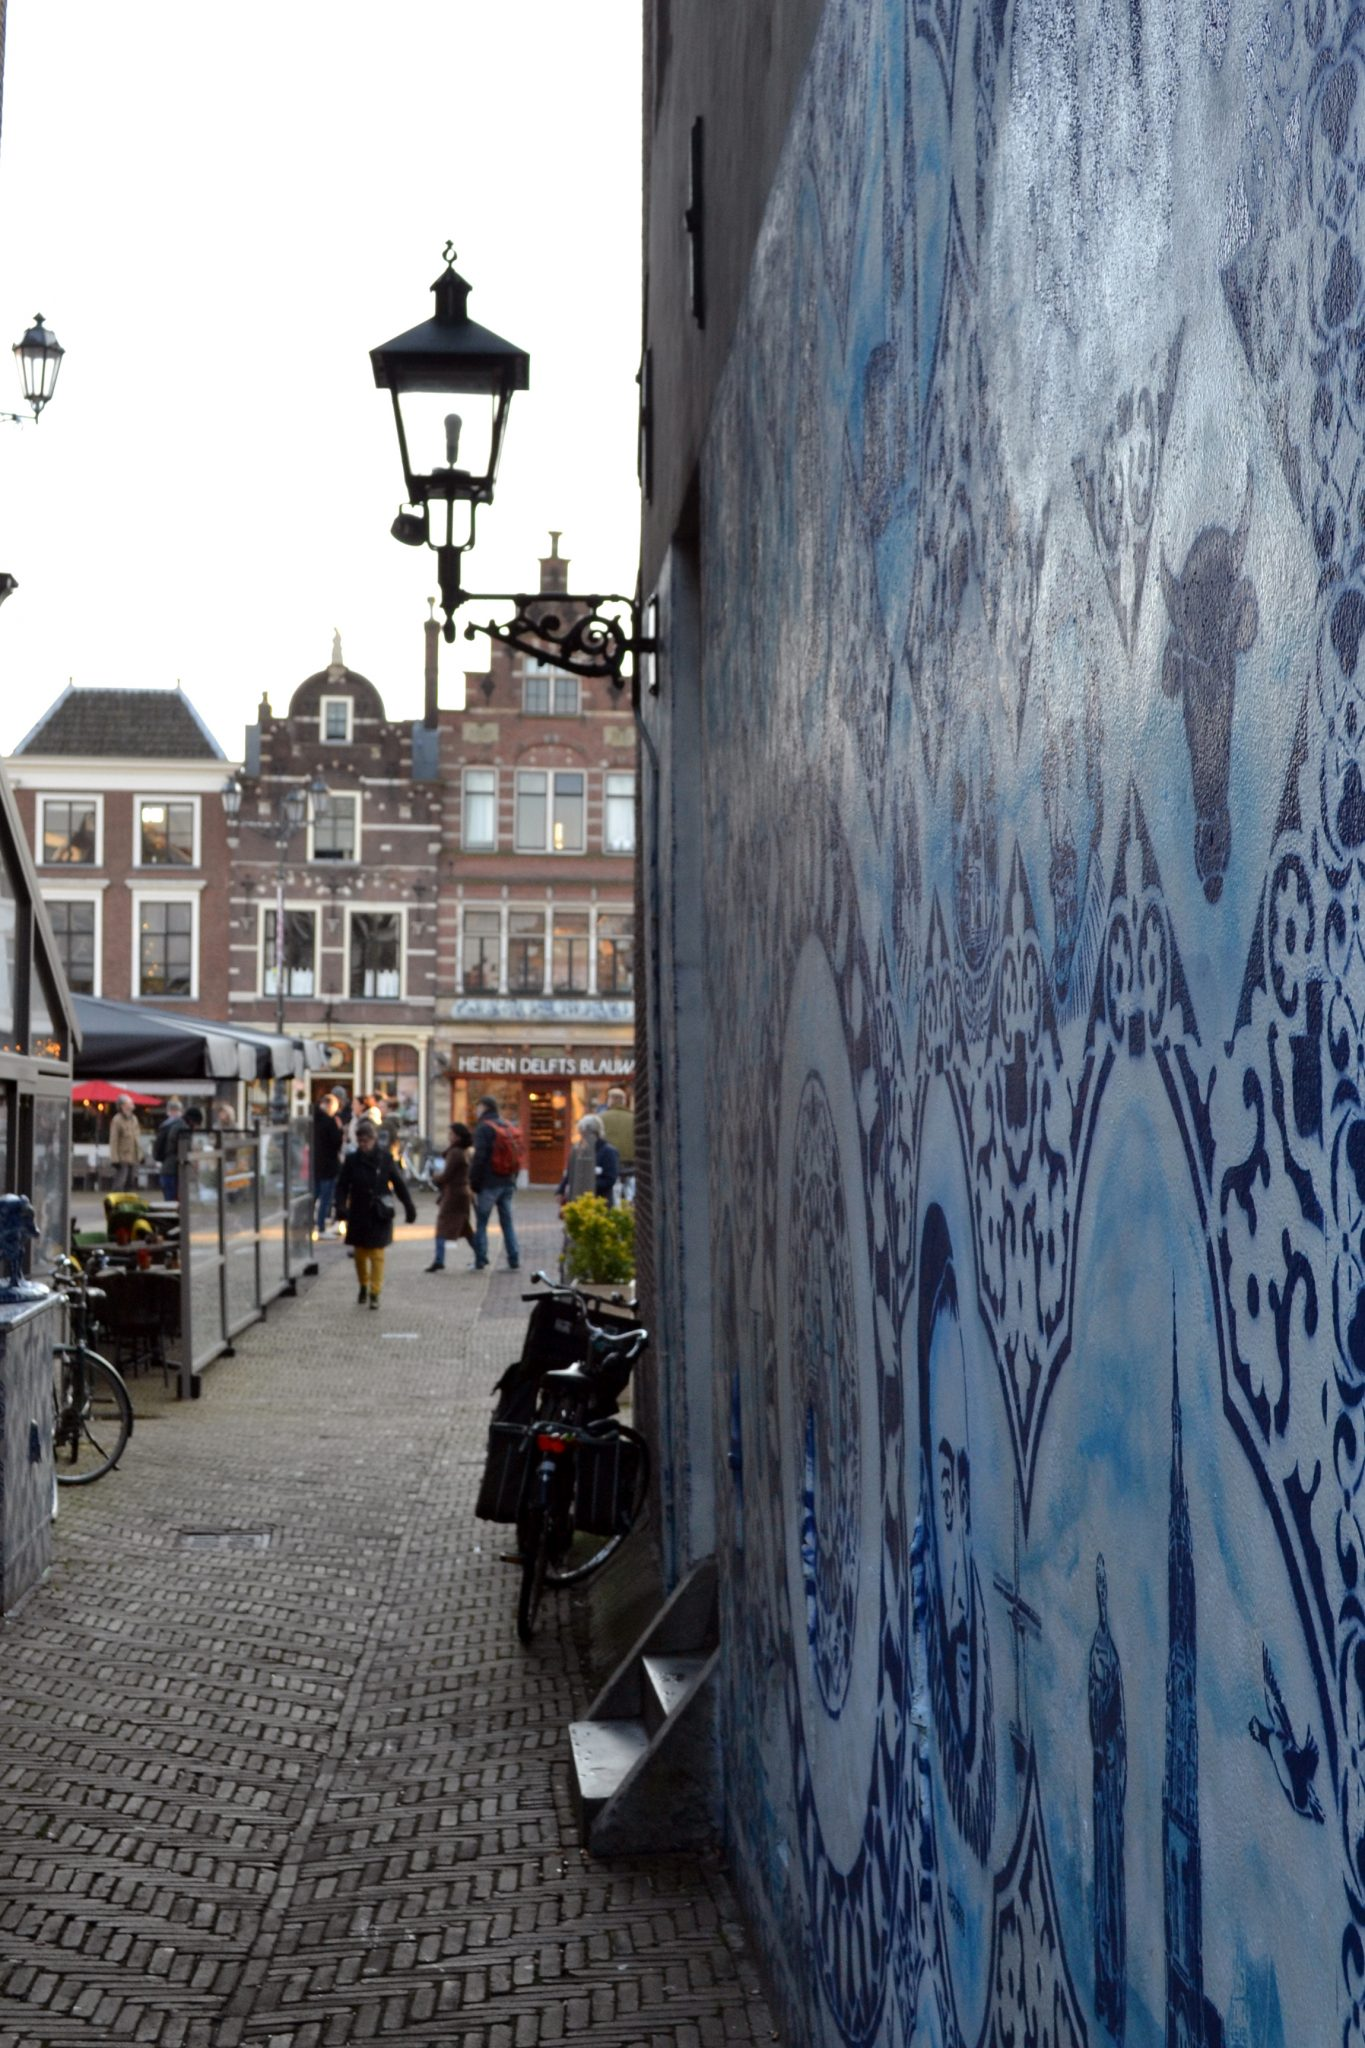 Travel Diary: Een dag in Delft - DELFT scaled